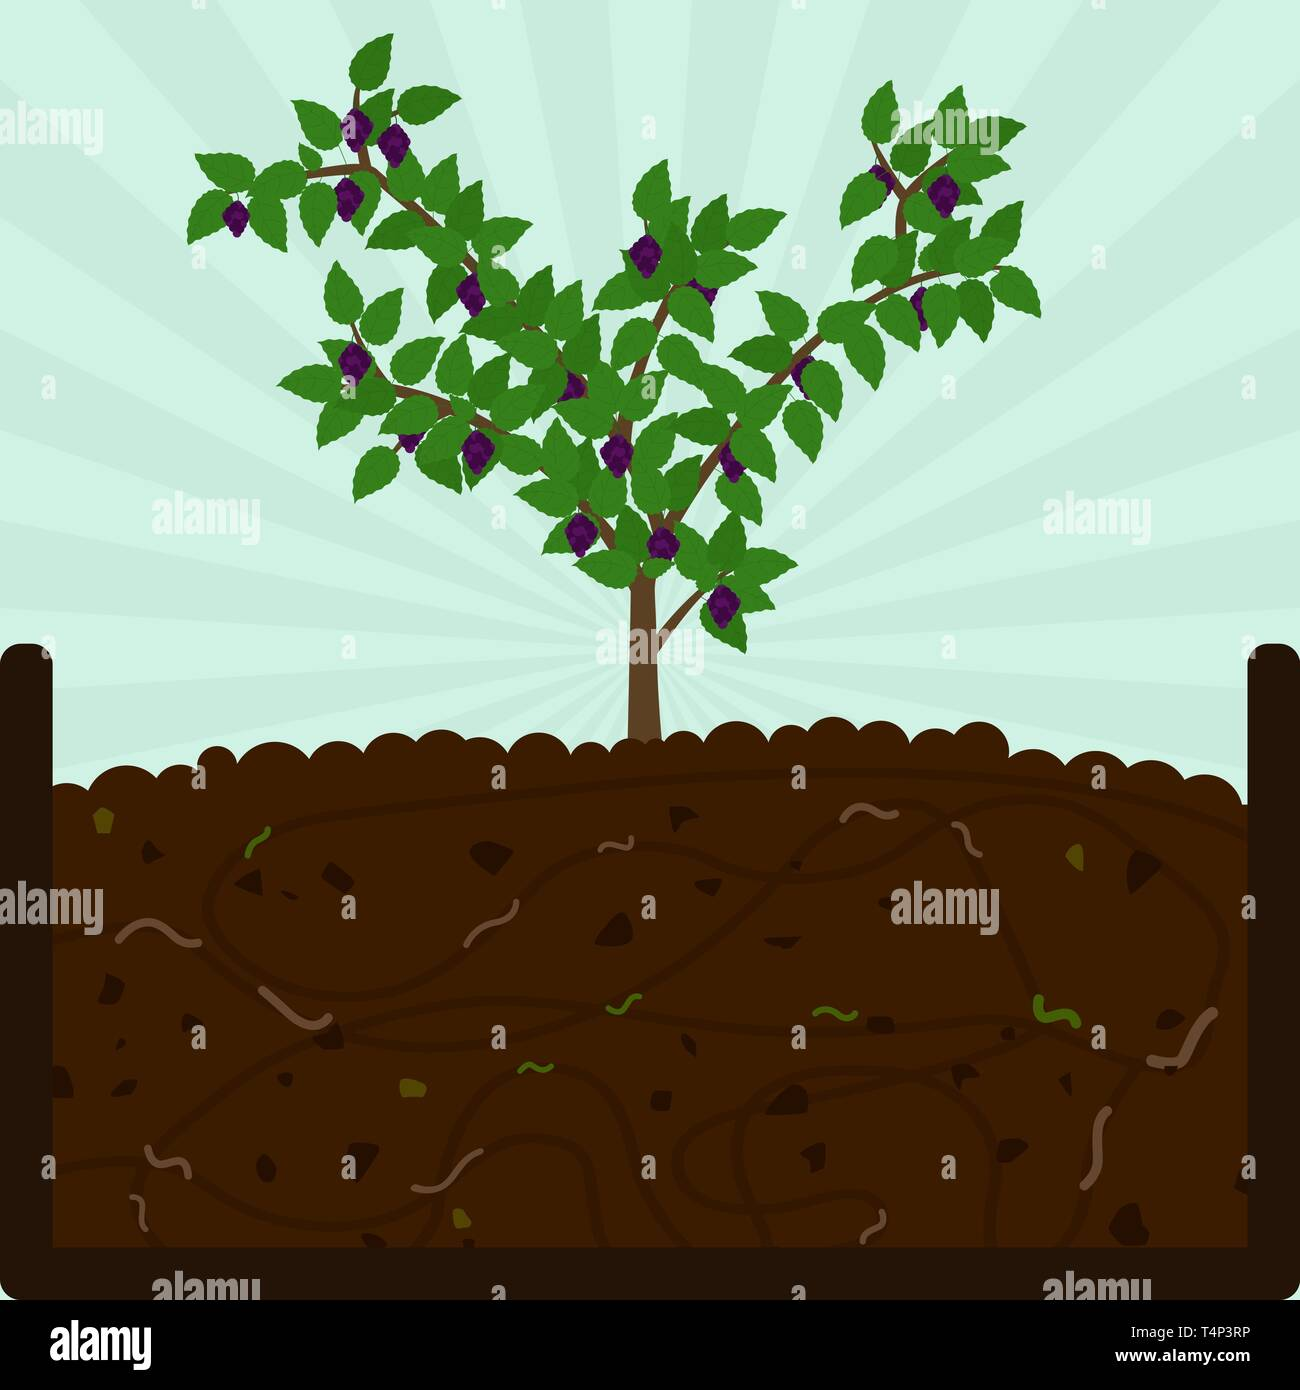 Planting blackberry fruit tree. Composting process with organic matter, microorganisms and earthworms. Fallen leaves on the ground. - Stock Vector